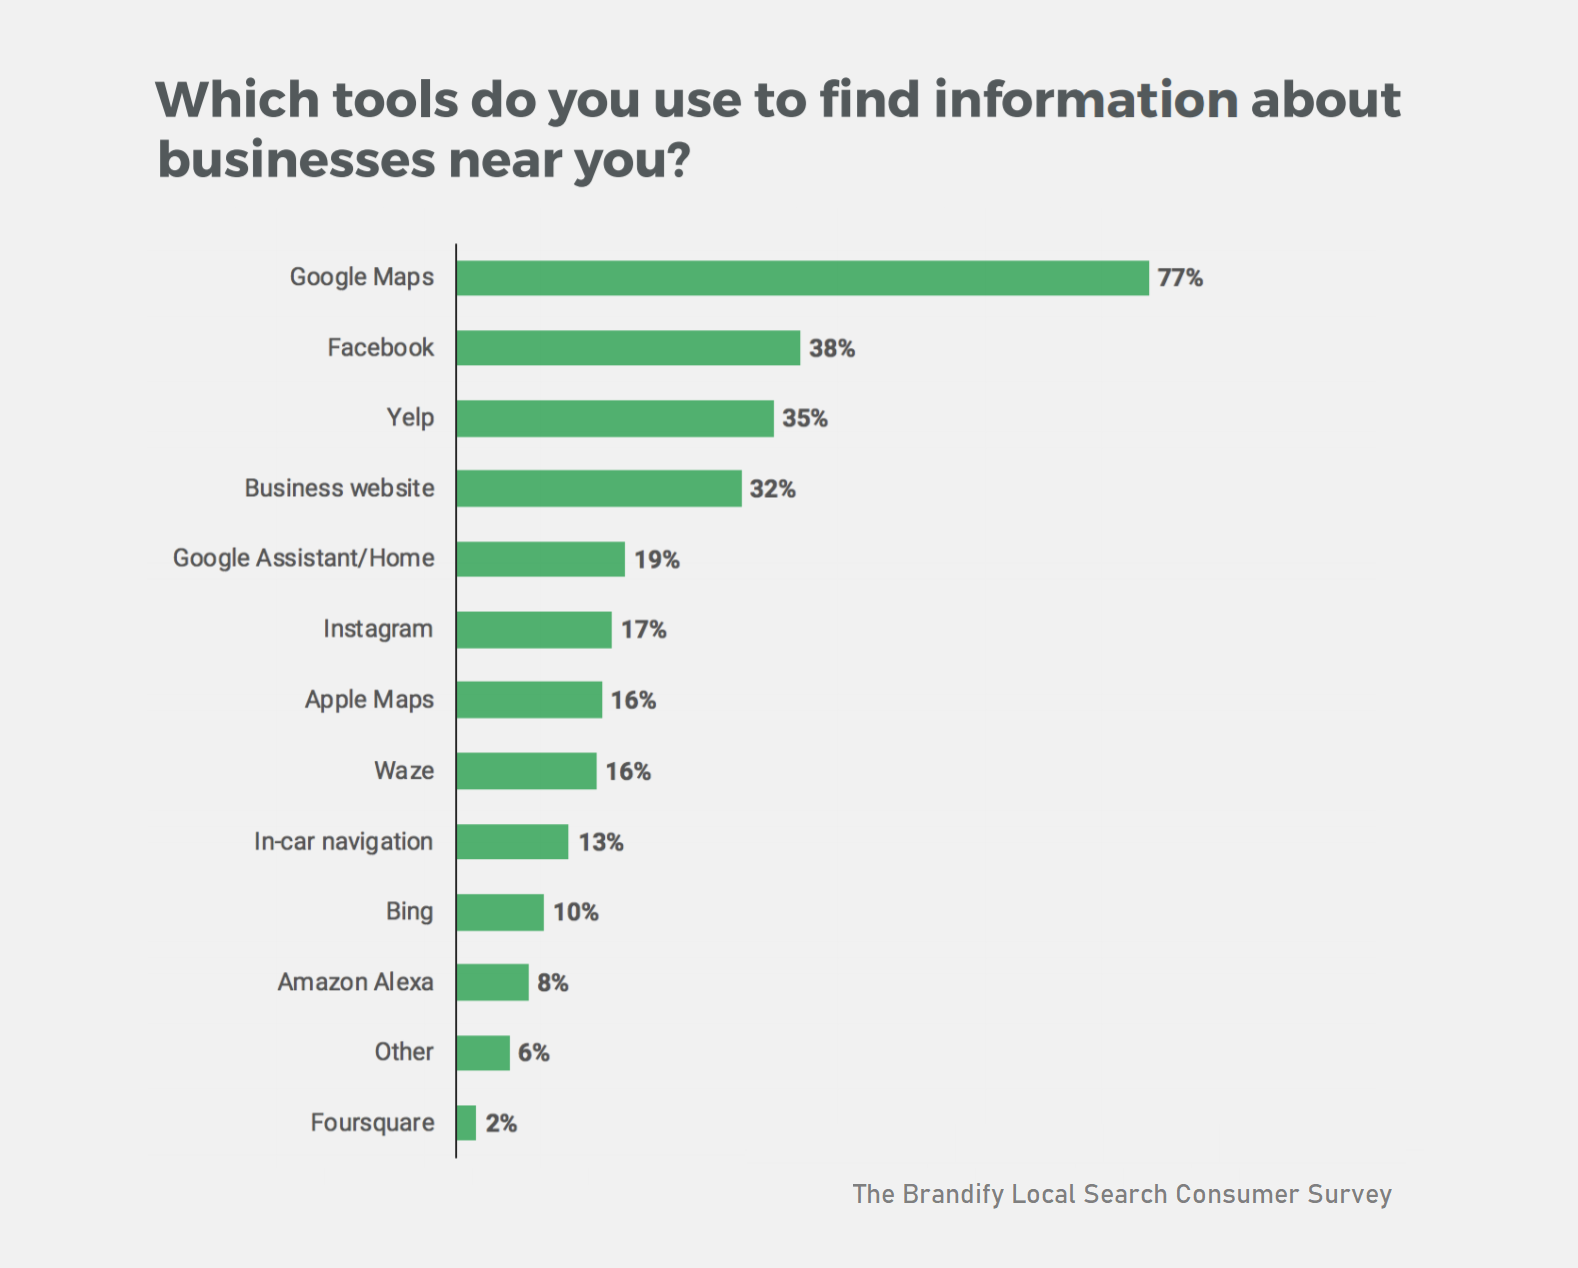 Which tools do you use to find information about businesses near you?